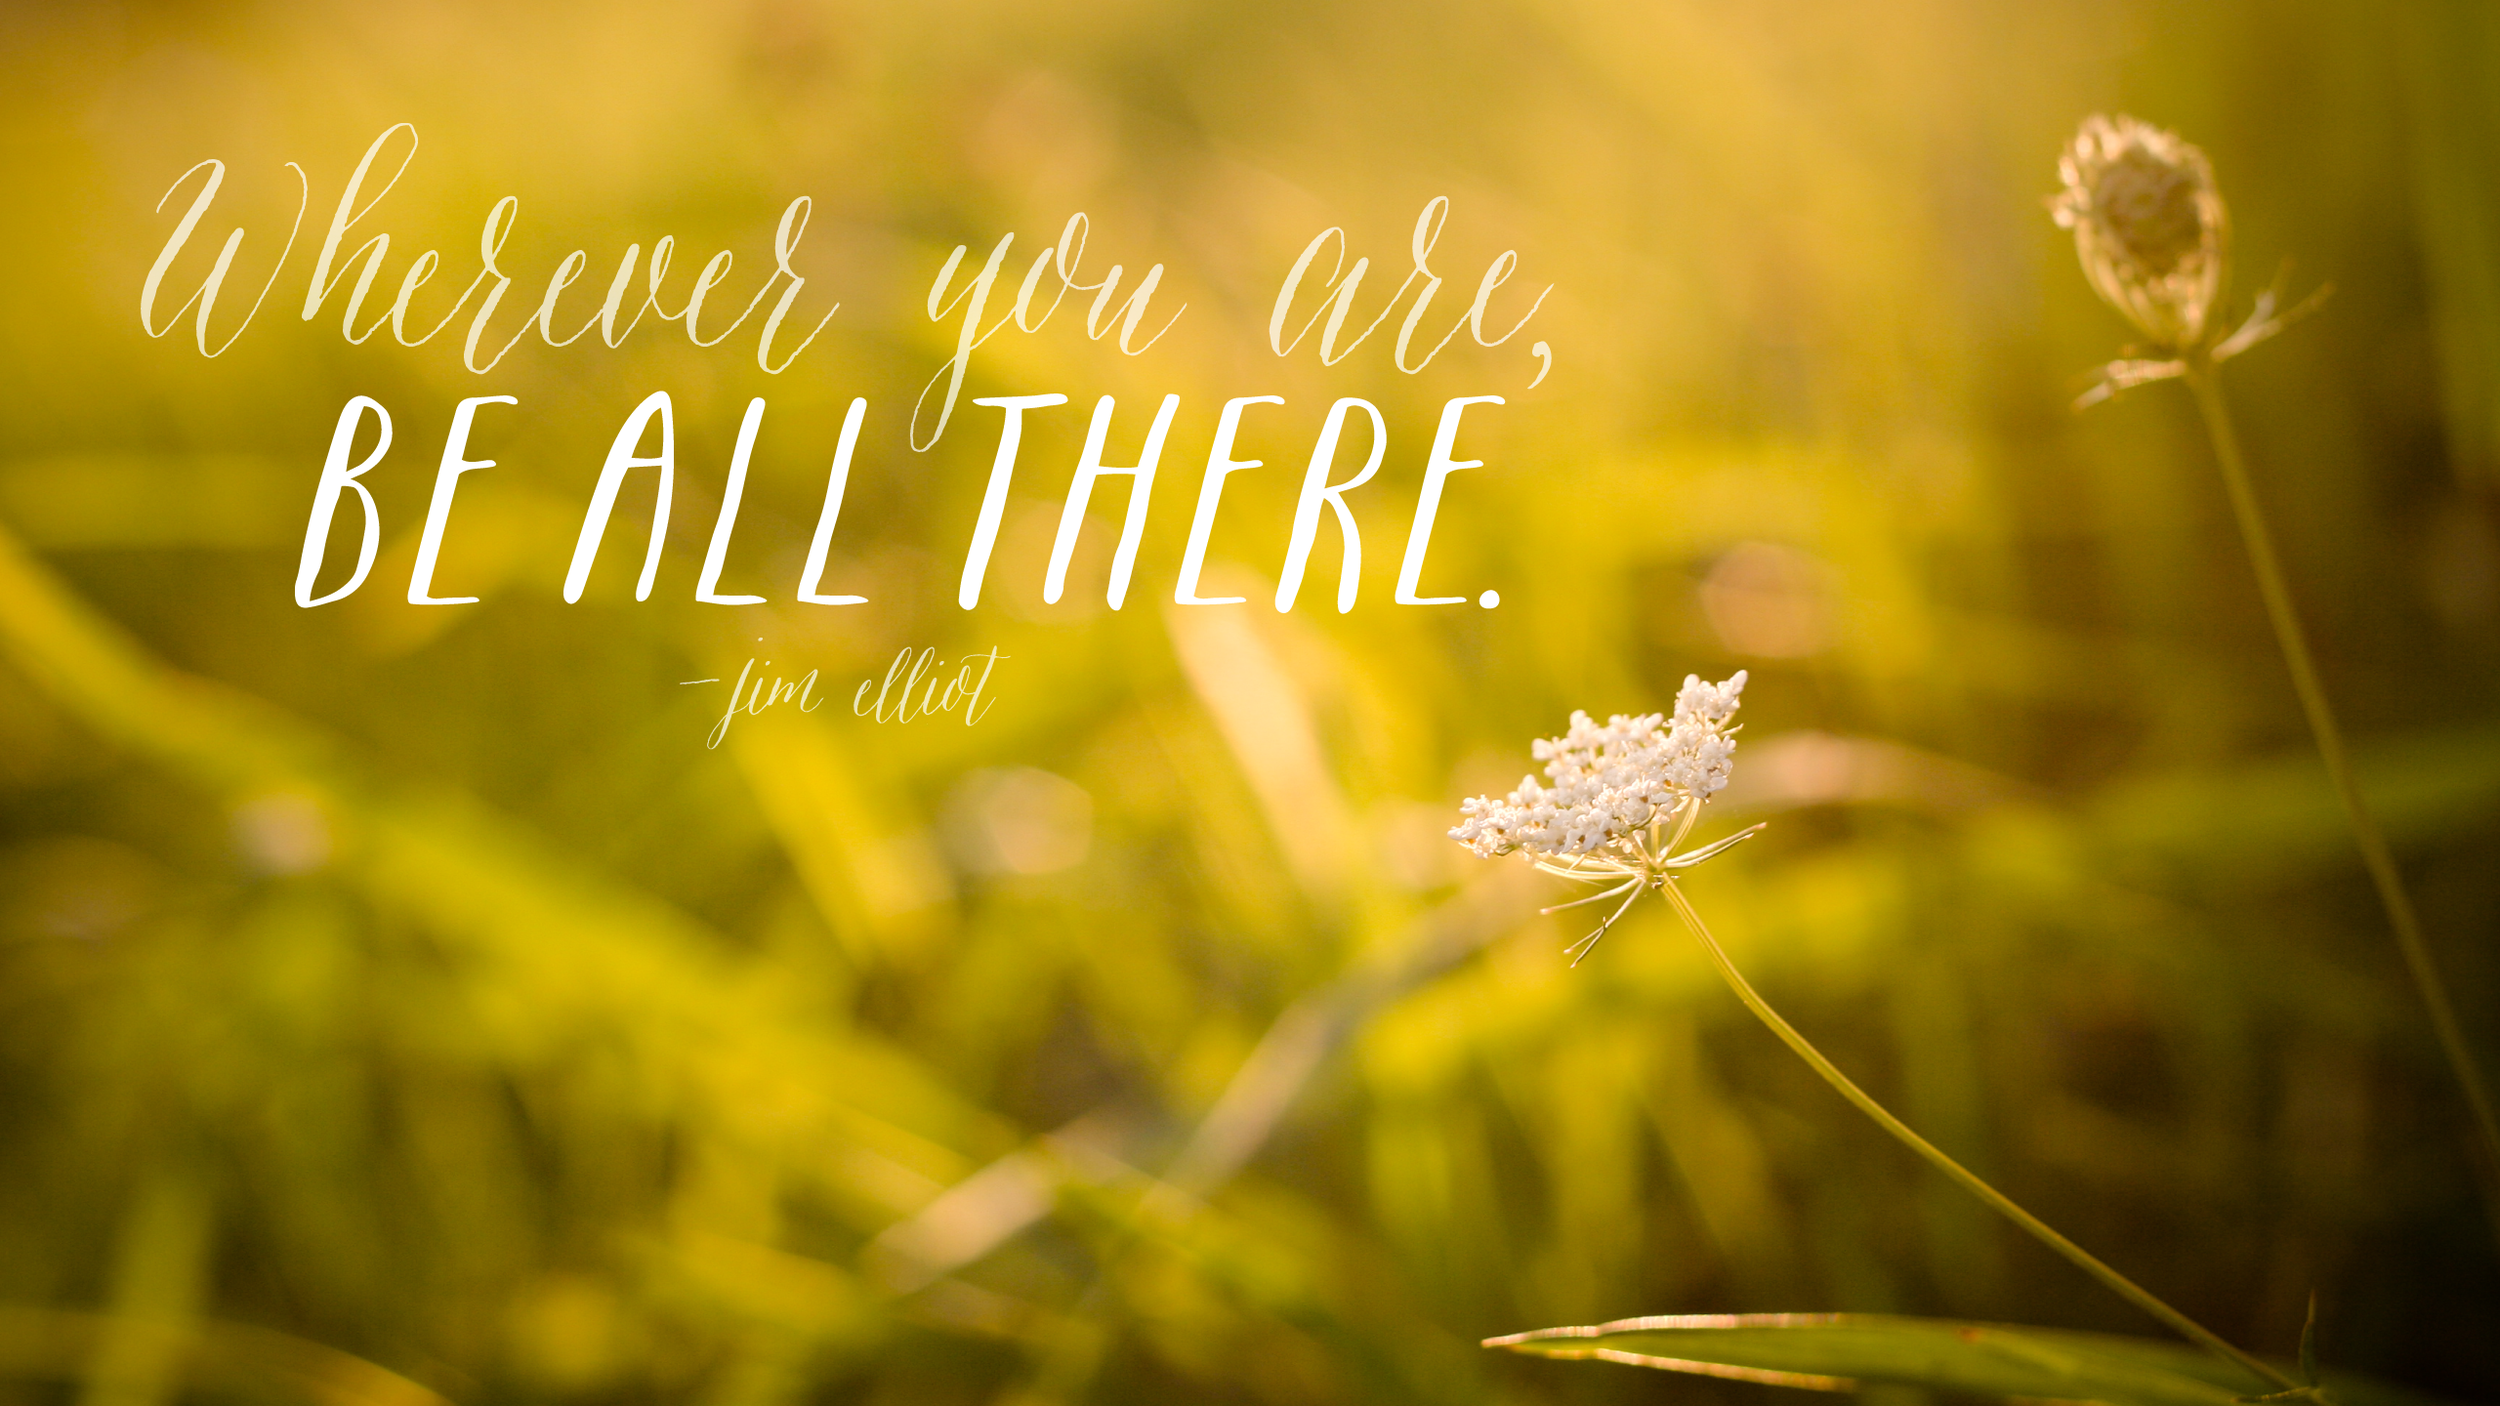 """Wherever you are, be all there."" (Free desktop wallpaper download)"